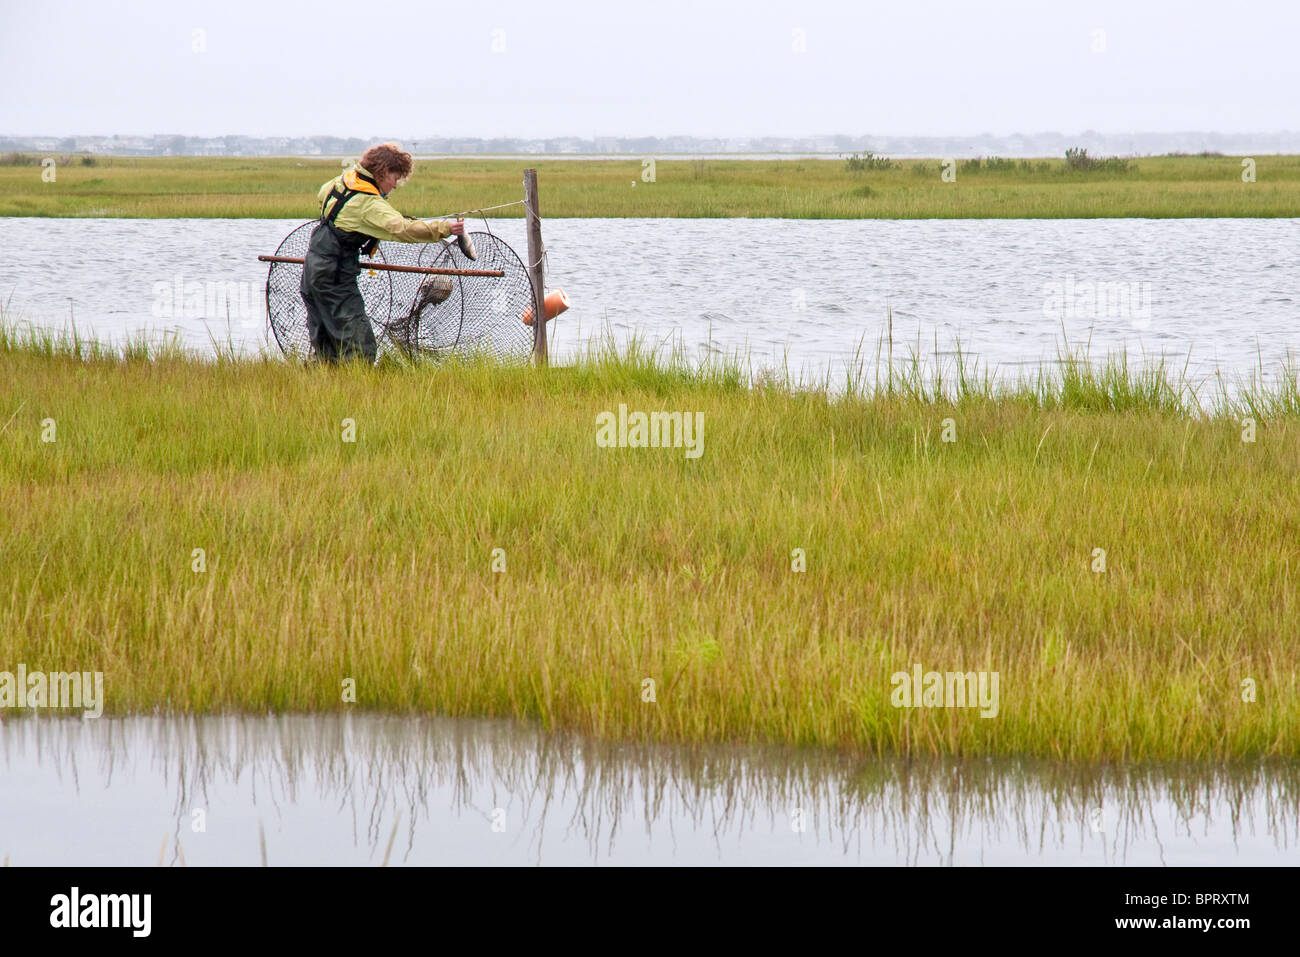 Woman baiting a hoop net to catch turtles for scientific research - Stock Image